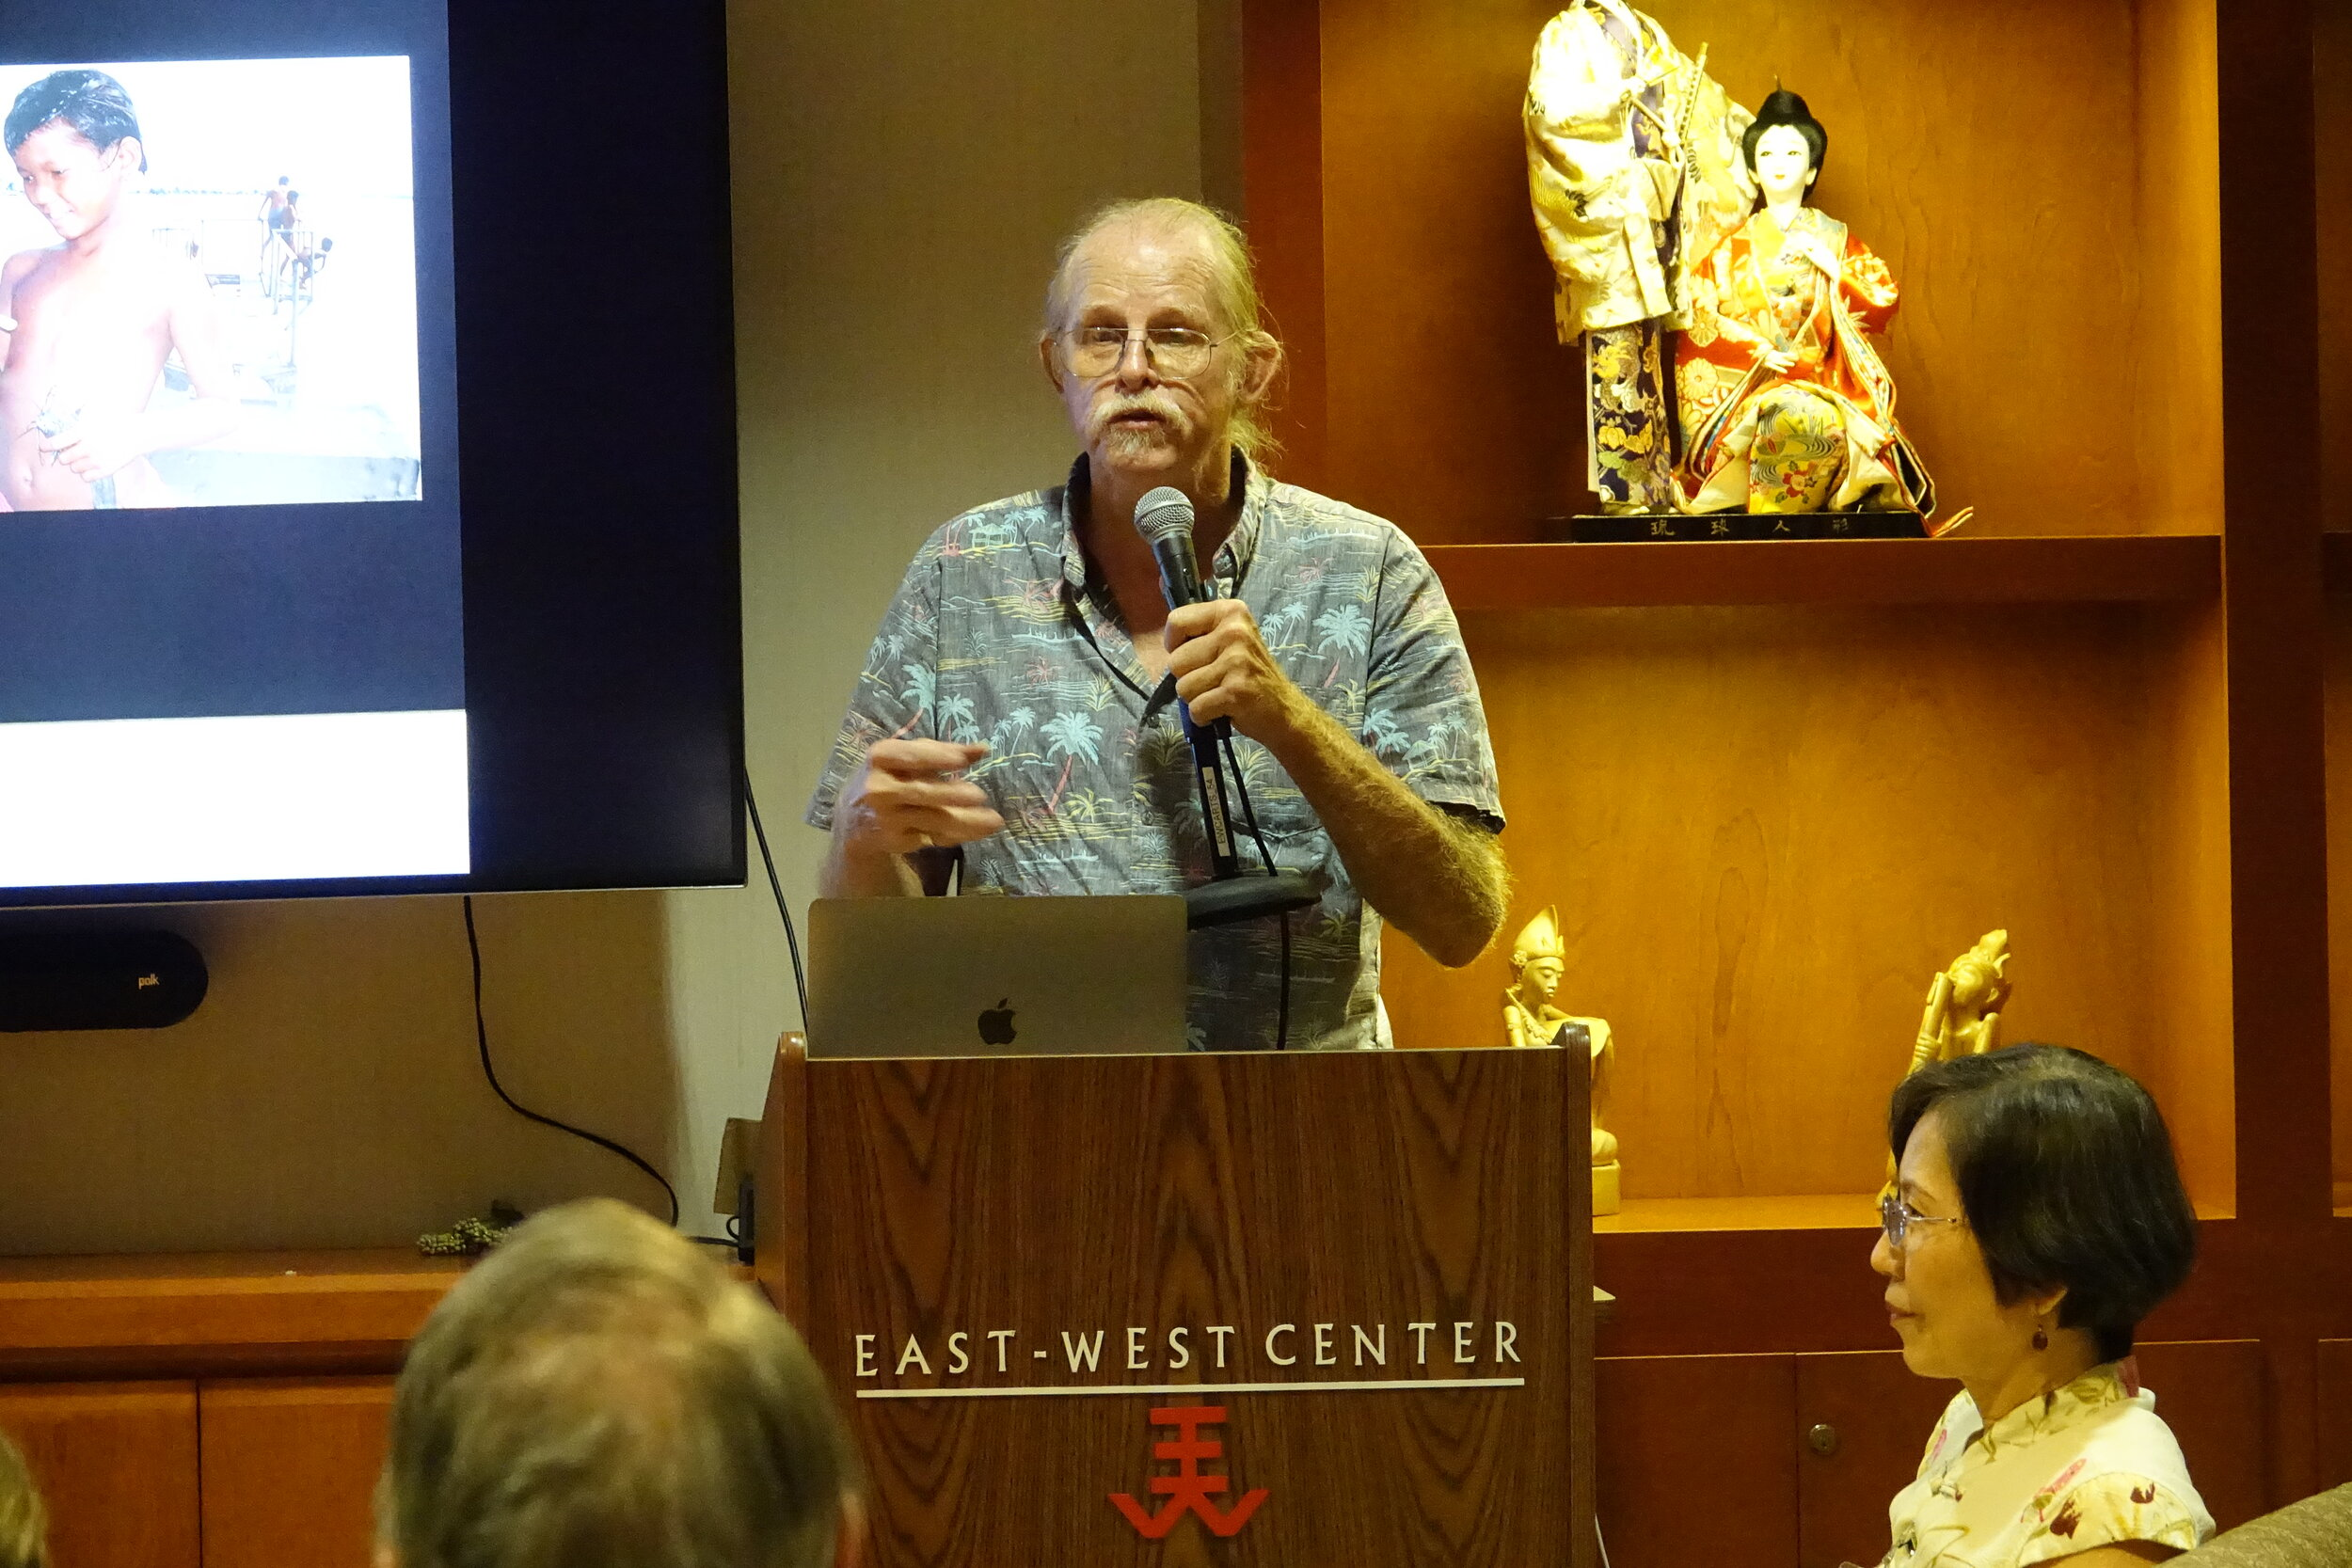 Dr. Don Hibbard reported on the Scholarship Committee's decisions on the awards.